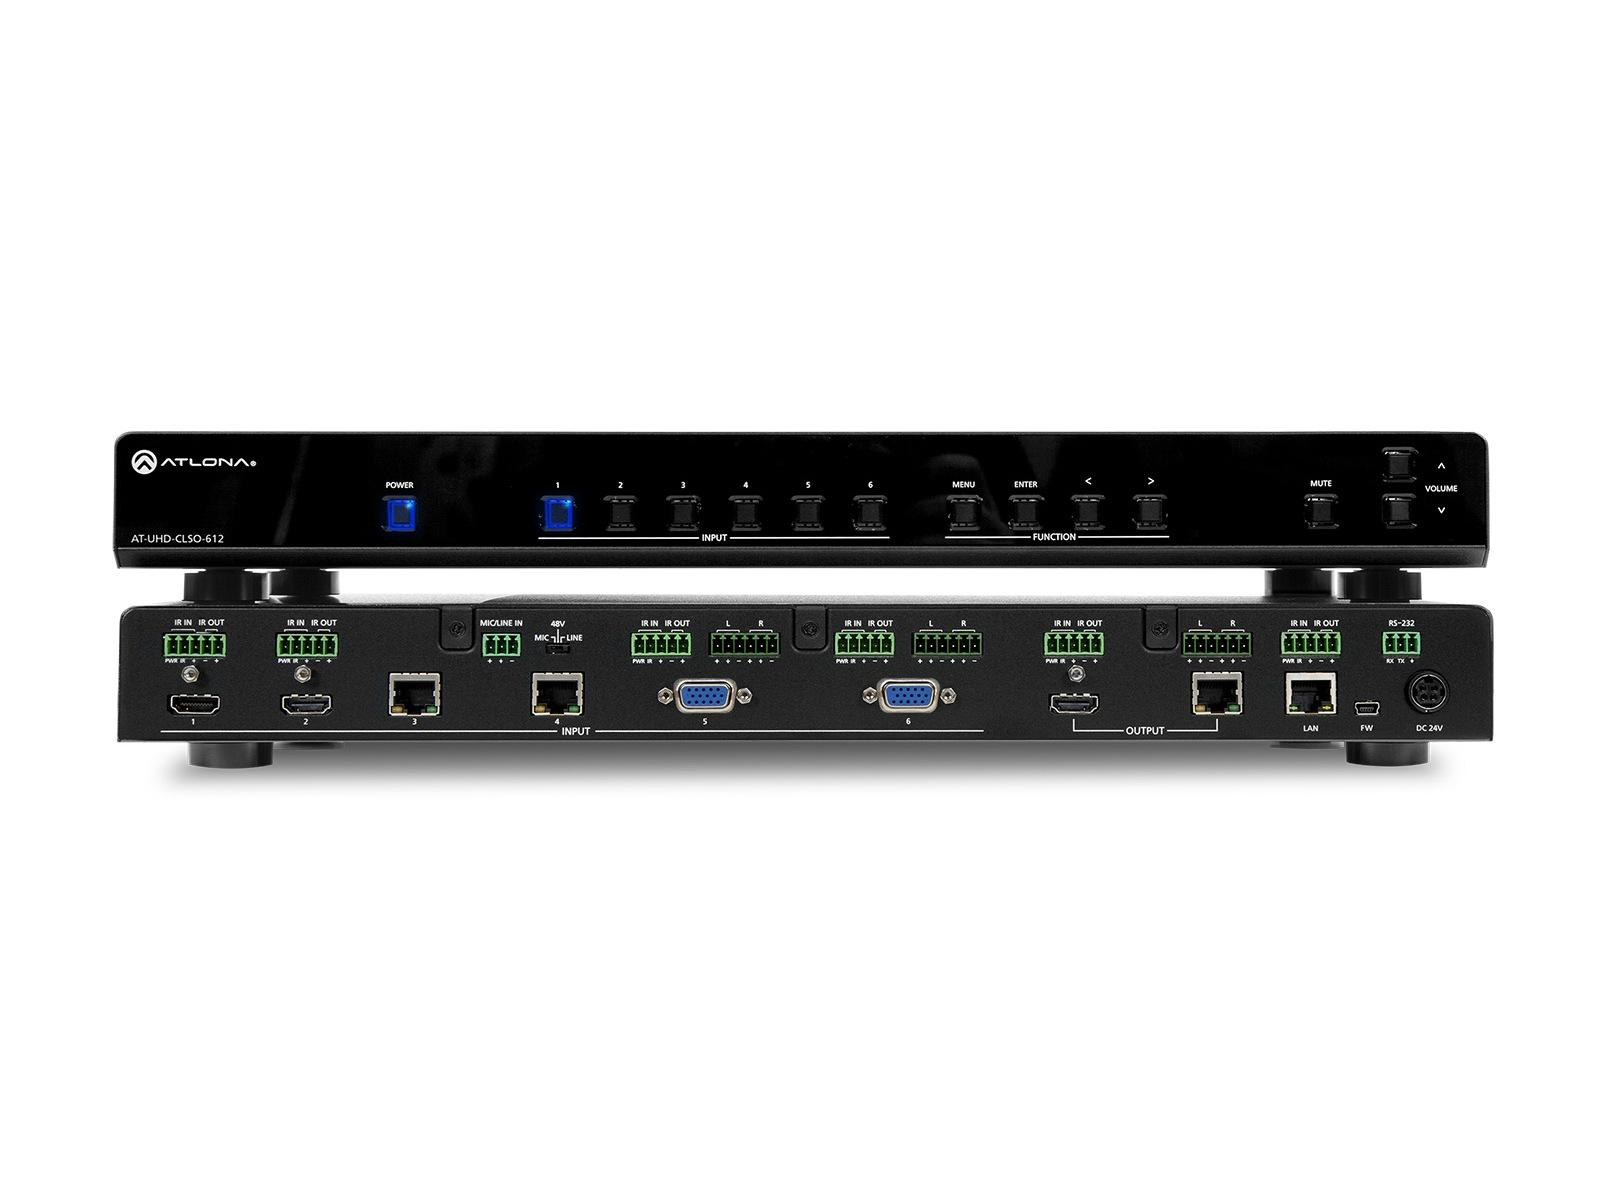 Atlona AT-UHD-CLSO-612-B 6-In Switch and Scaler w HDBaseT and Mirrored HDMI Out